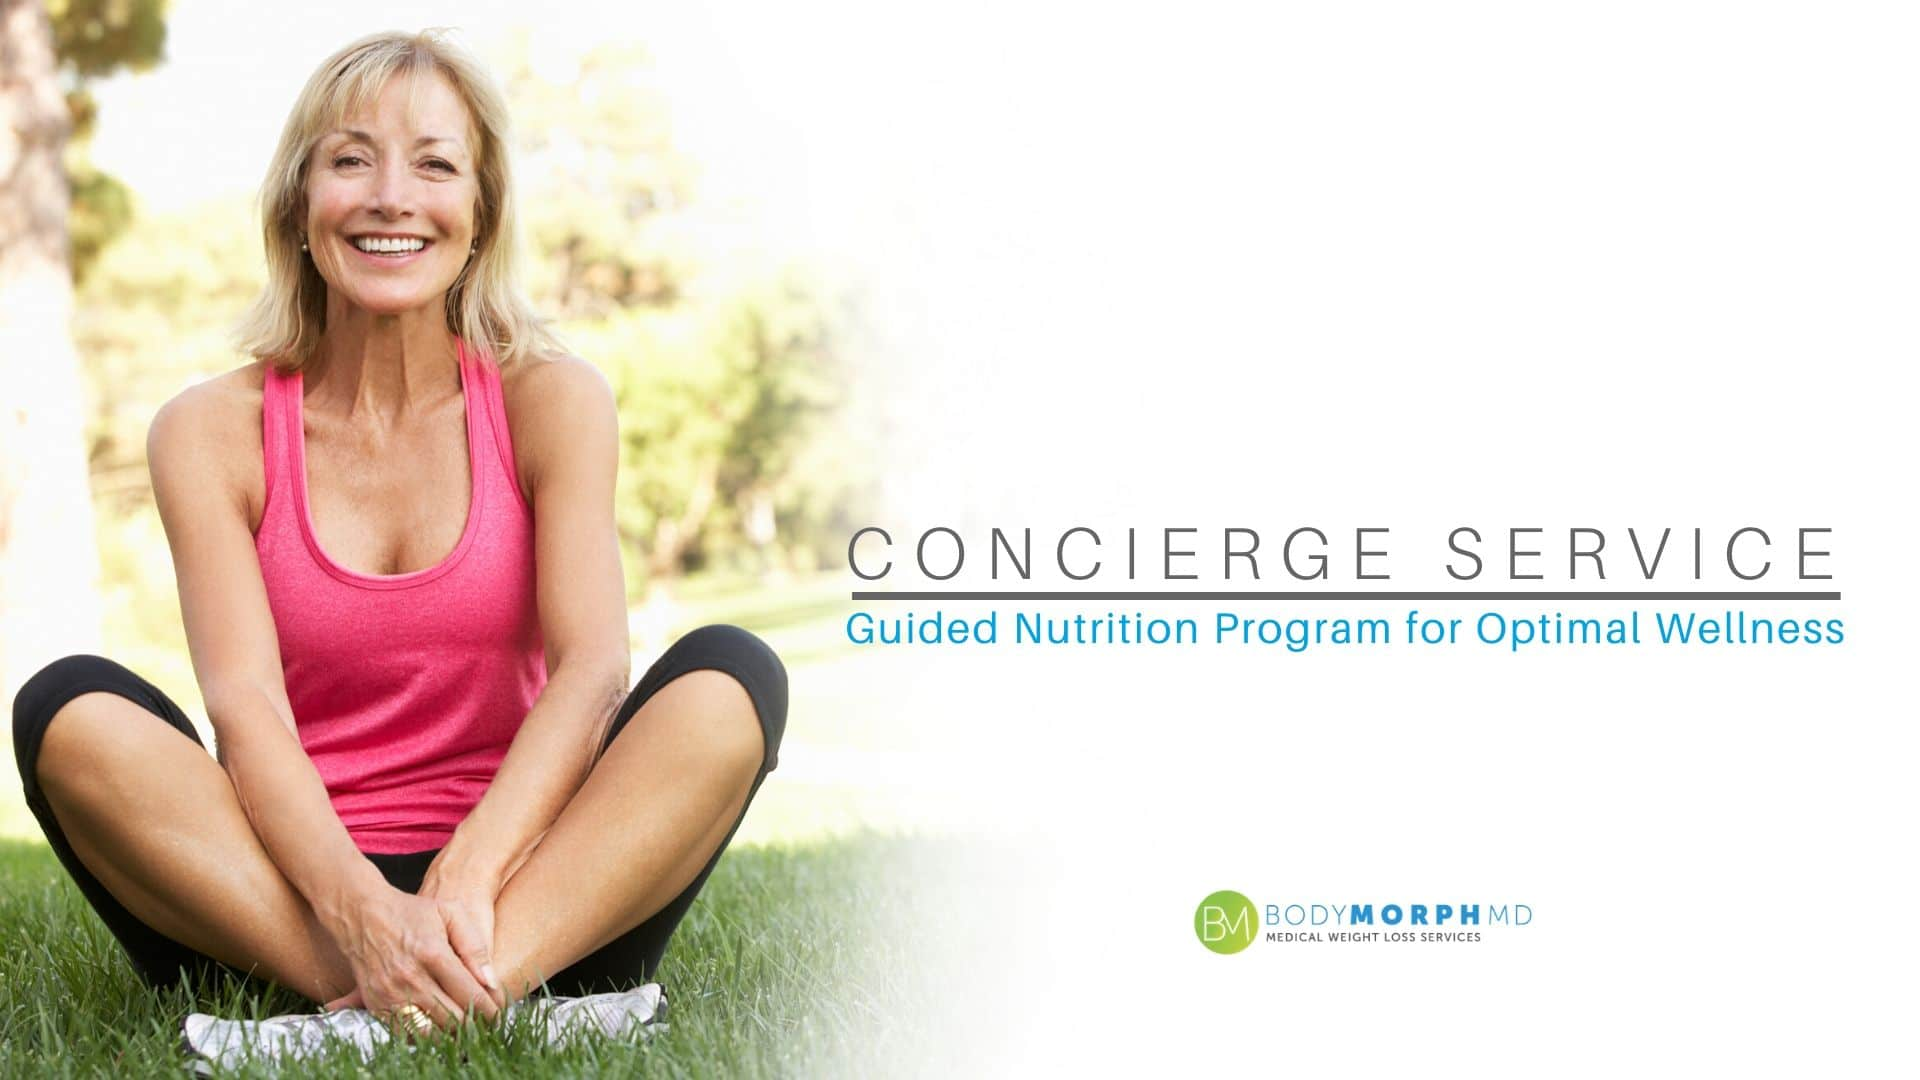 Concierge Nutrition Program in Body Morph MD at Yonkers, NY.